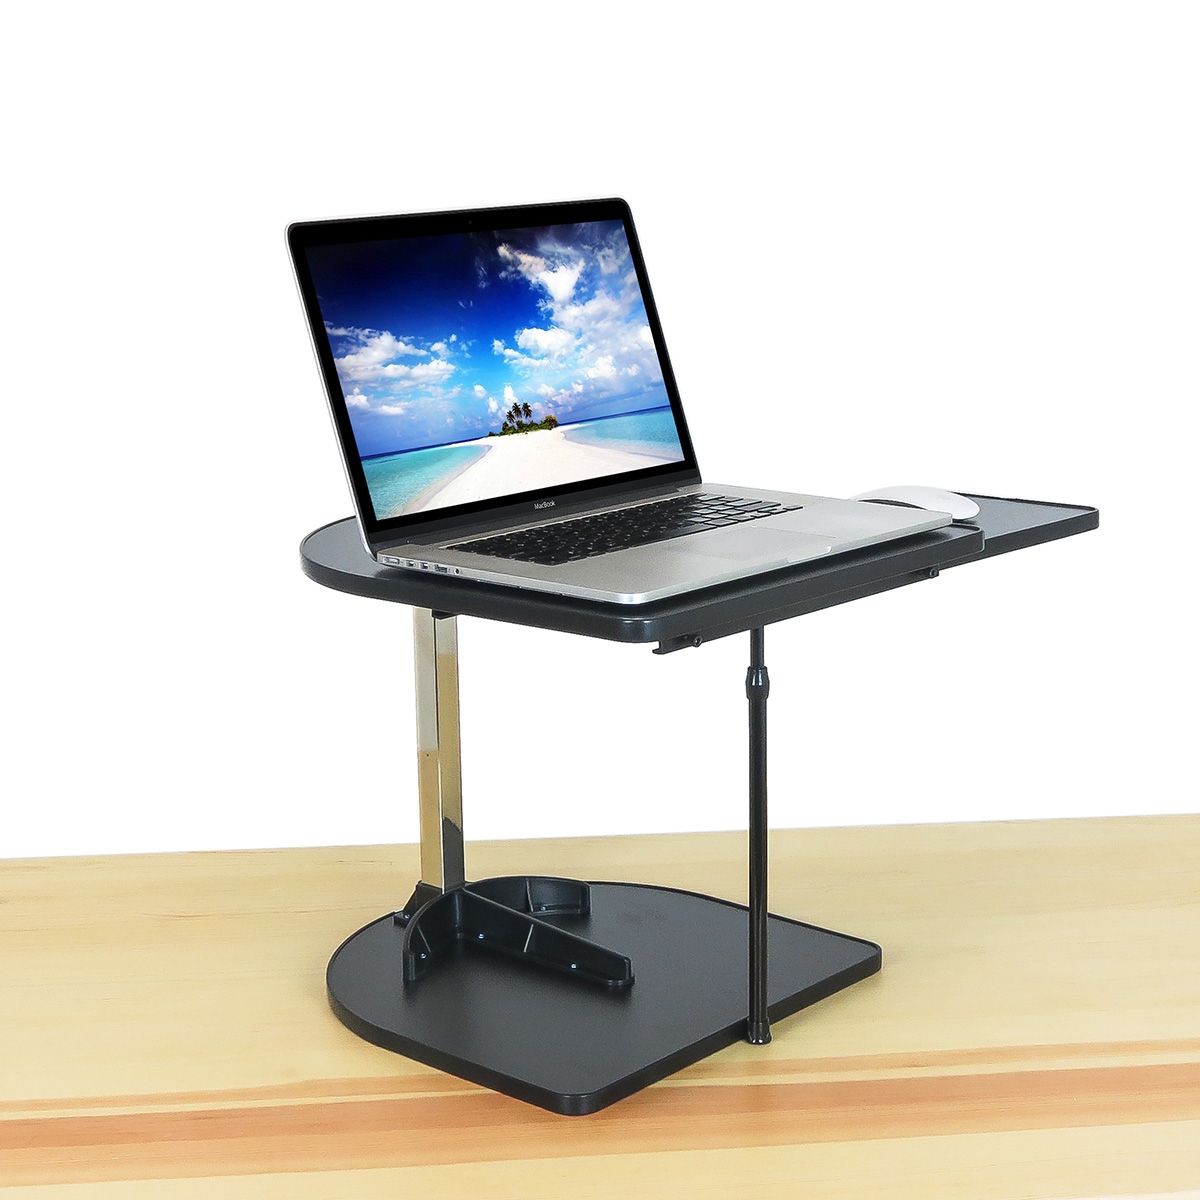 stand notebook table pc picture ipad of desk mobile oz tray adjustable computer mall laptop crazy